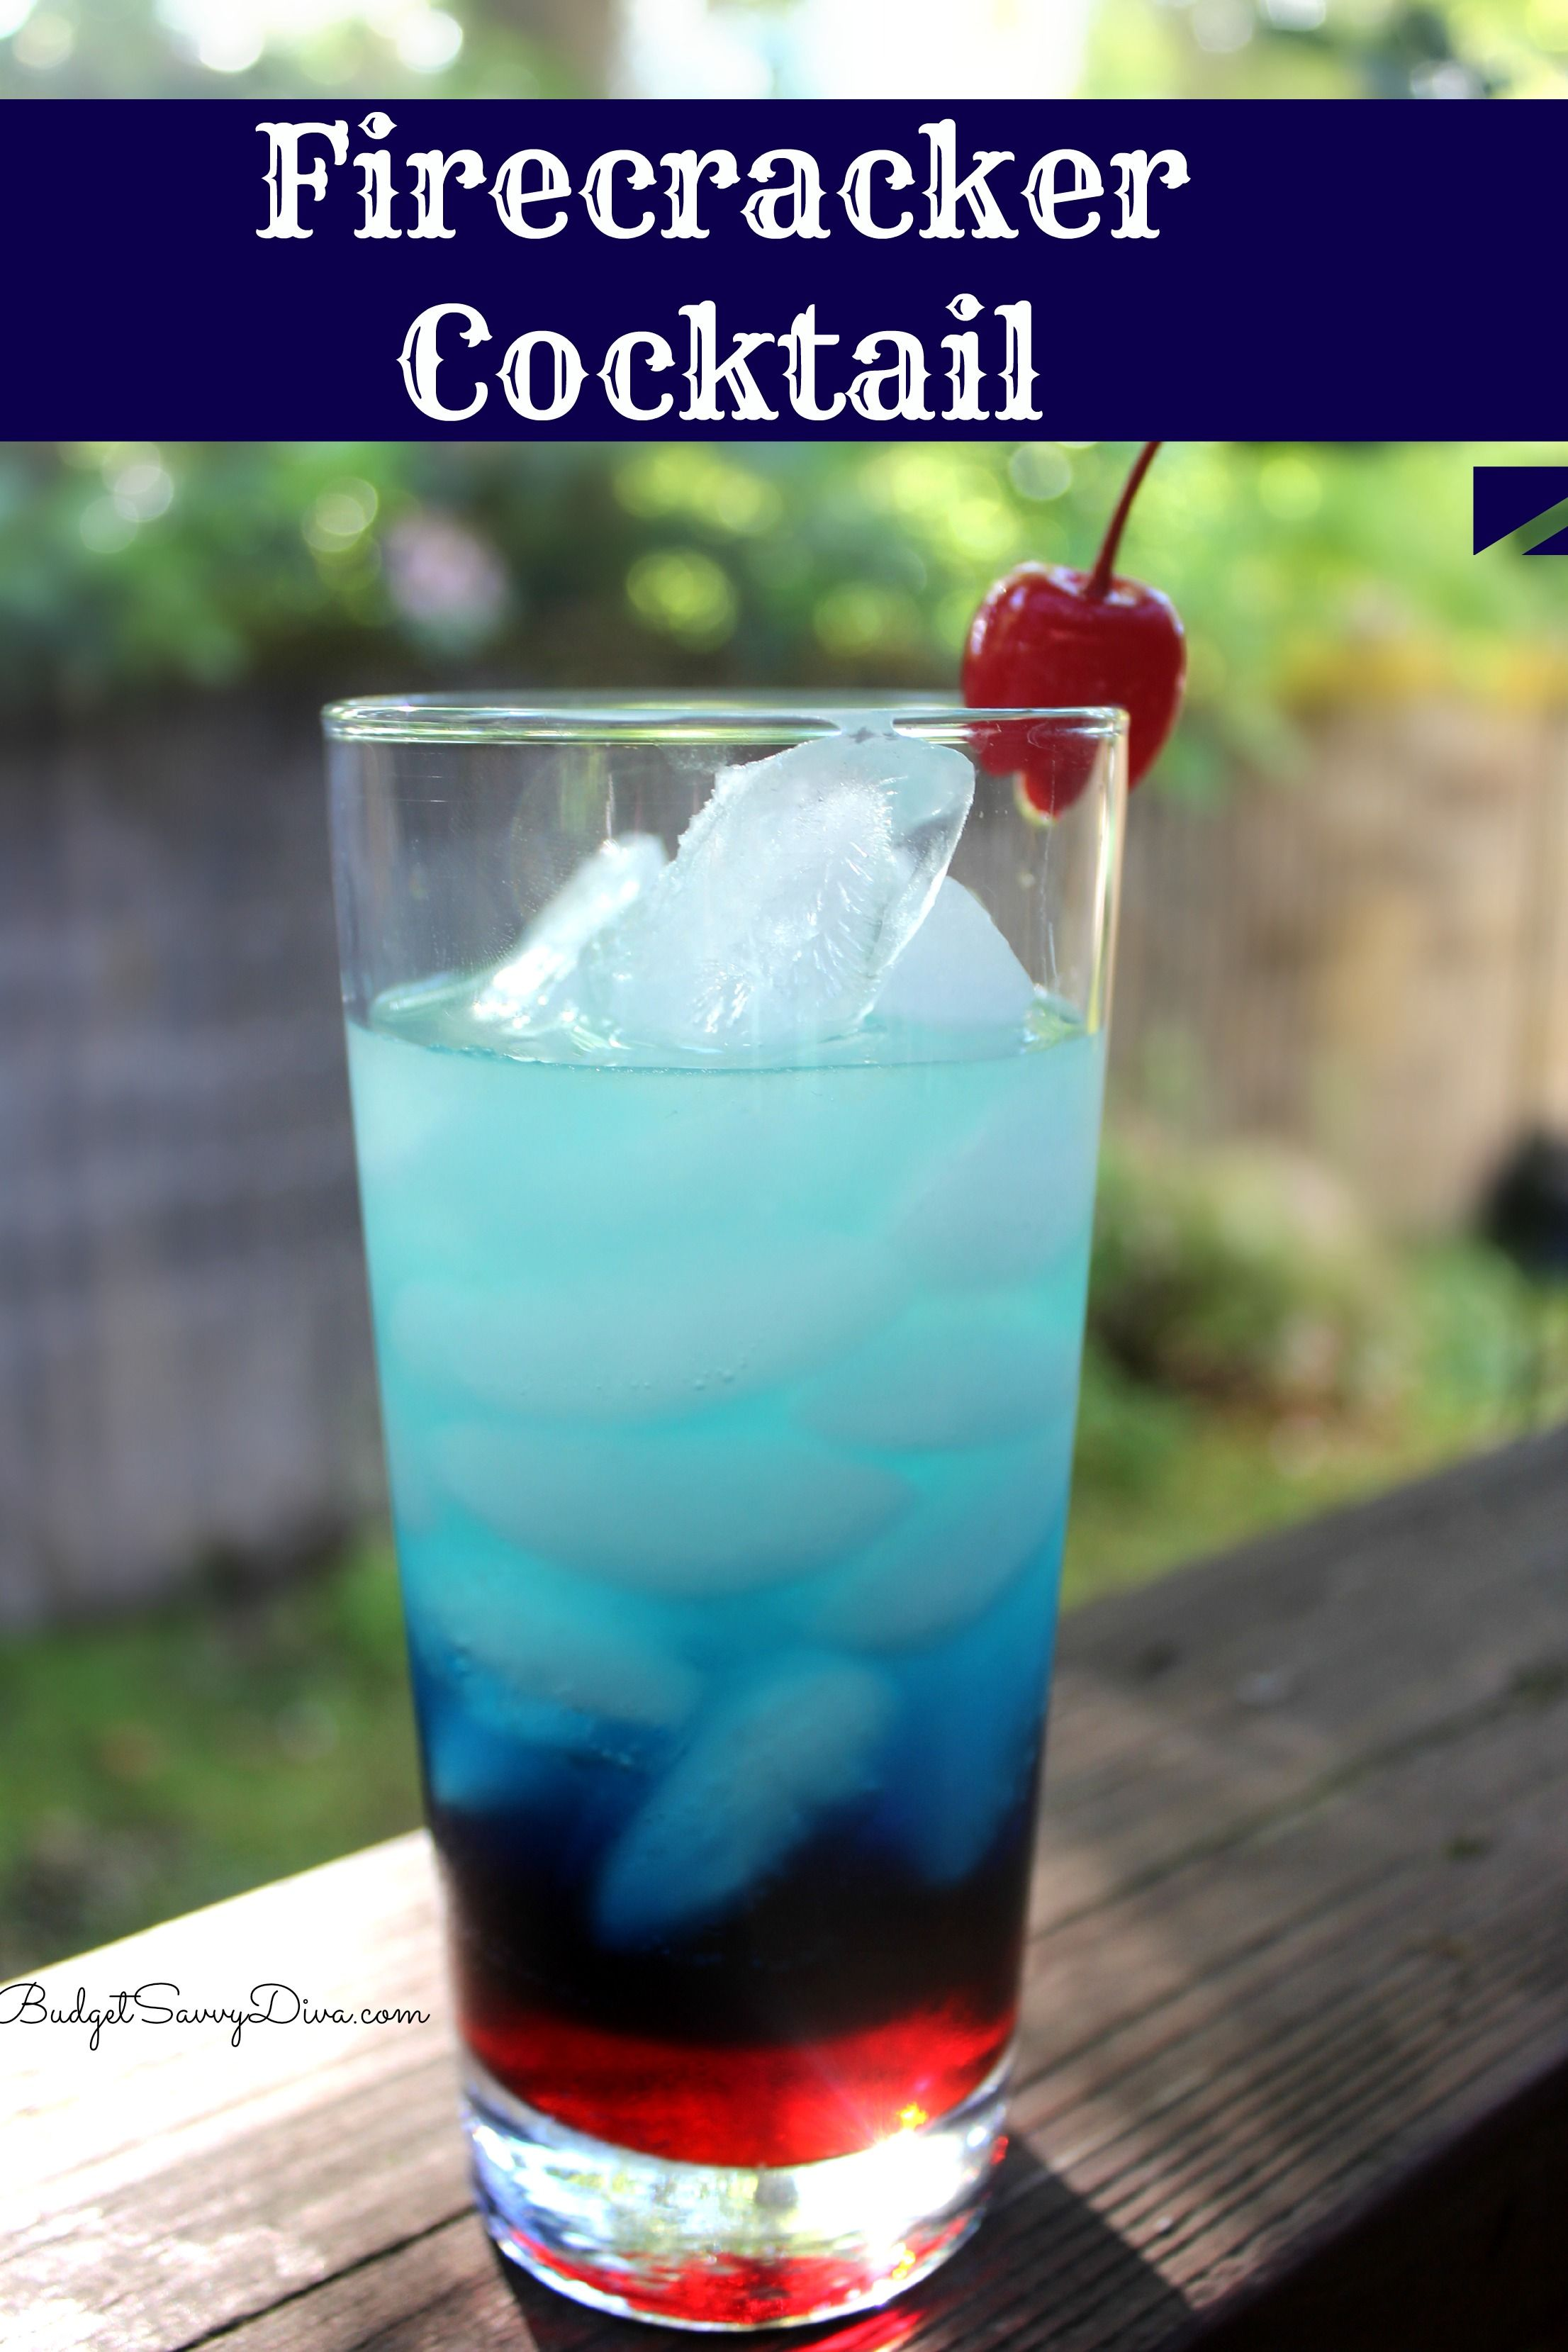 Firecracker cocktail recipe the talk dr oz and for Vodka cocktails recipes easy